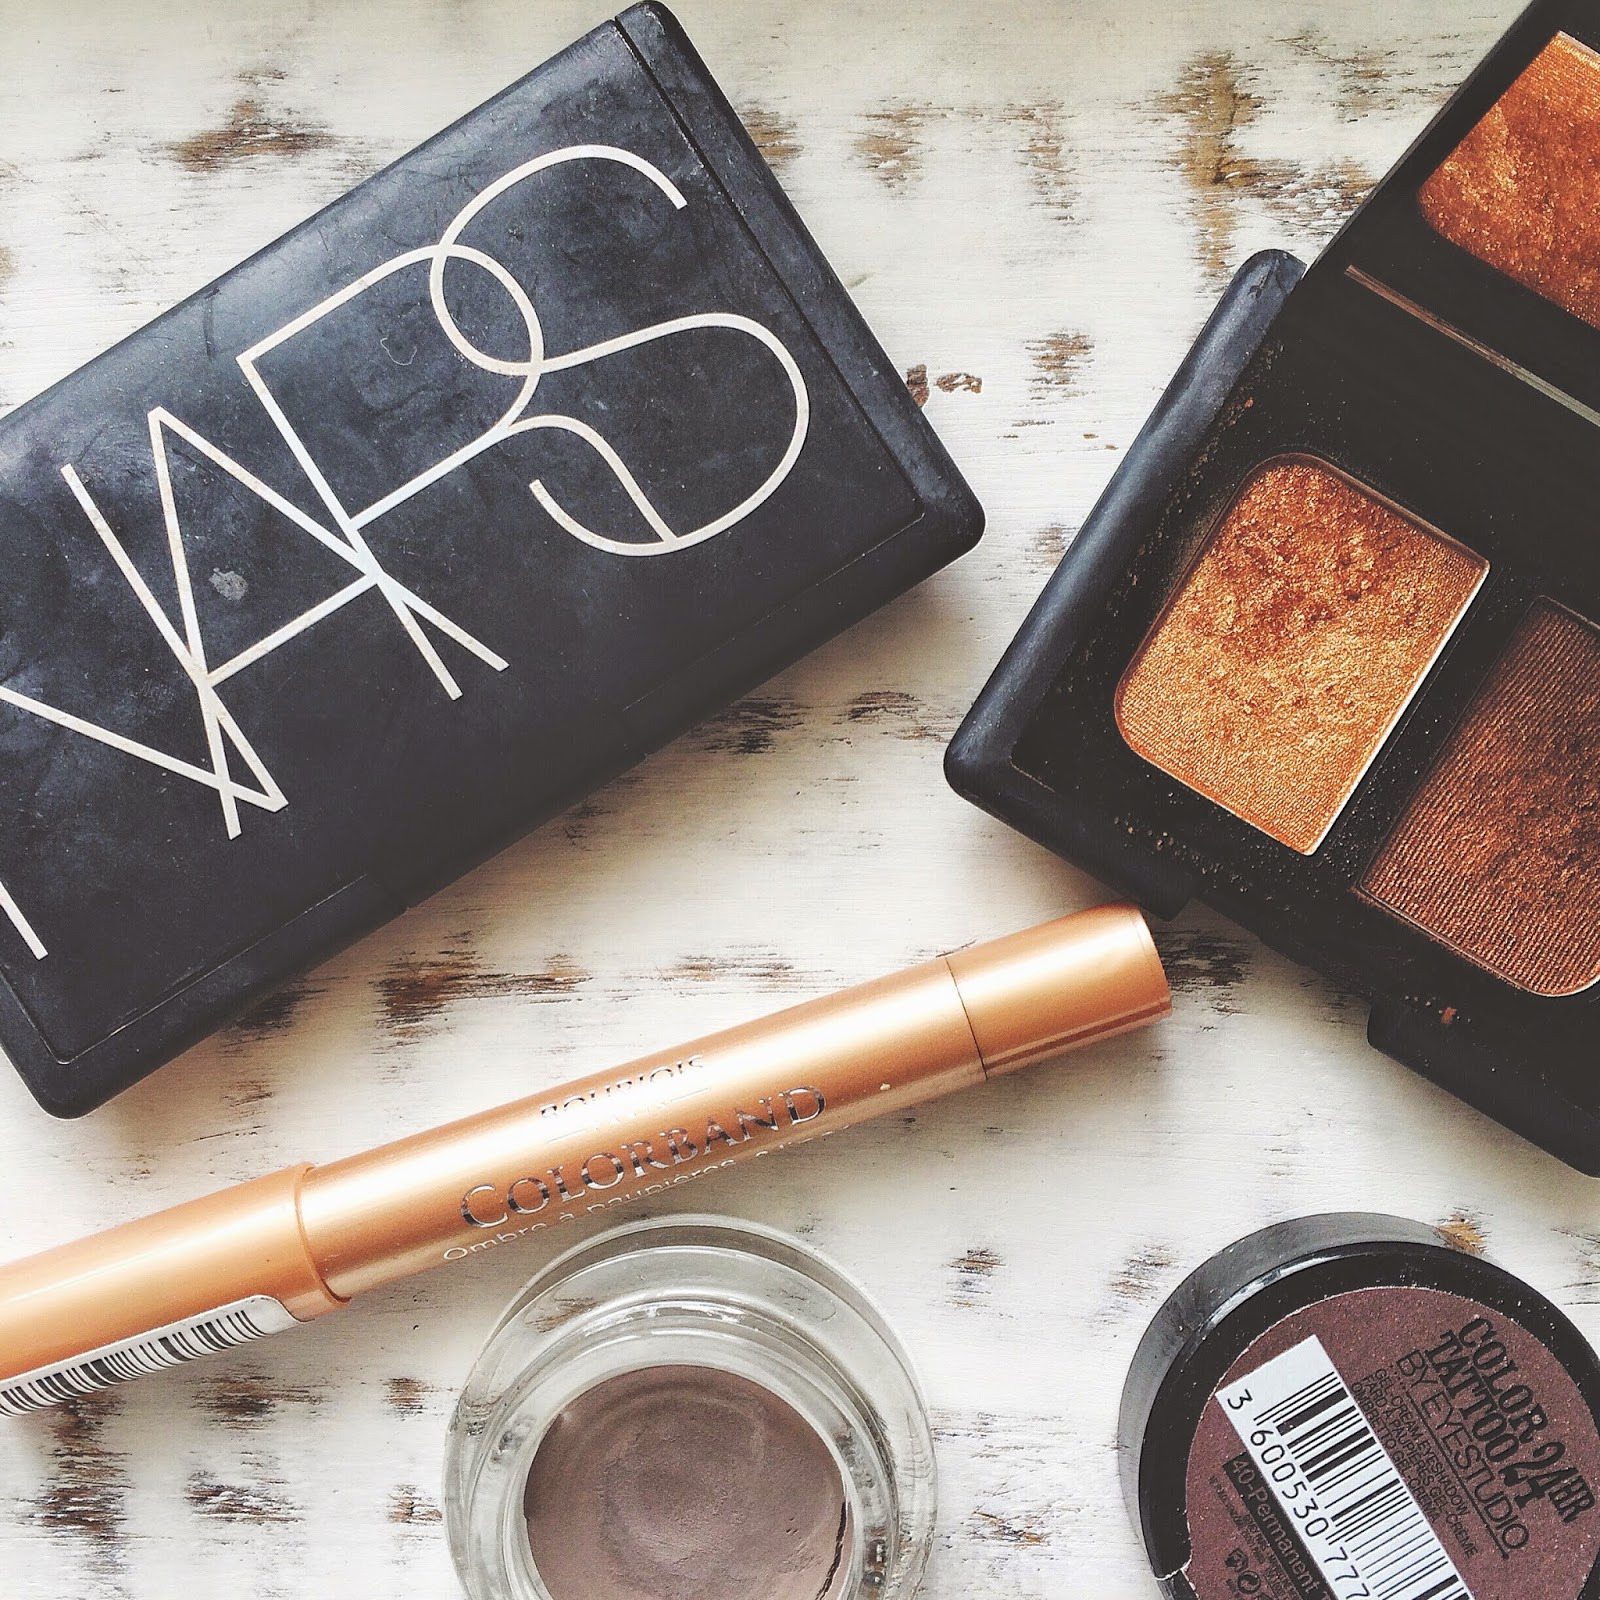 The Nars copper Isolde Duo eyeshadow palette